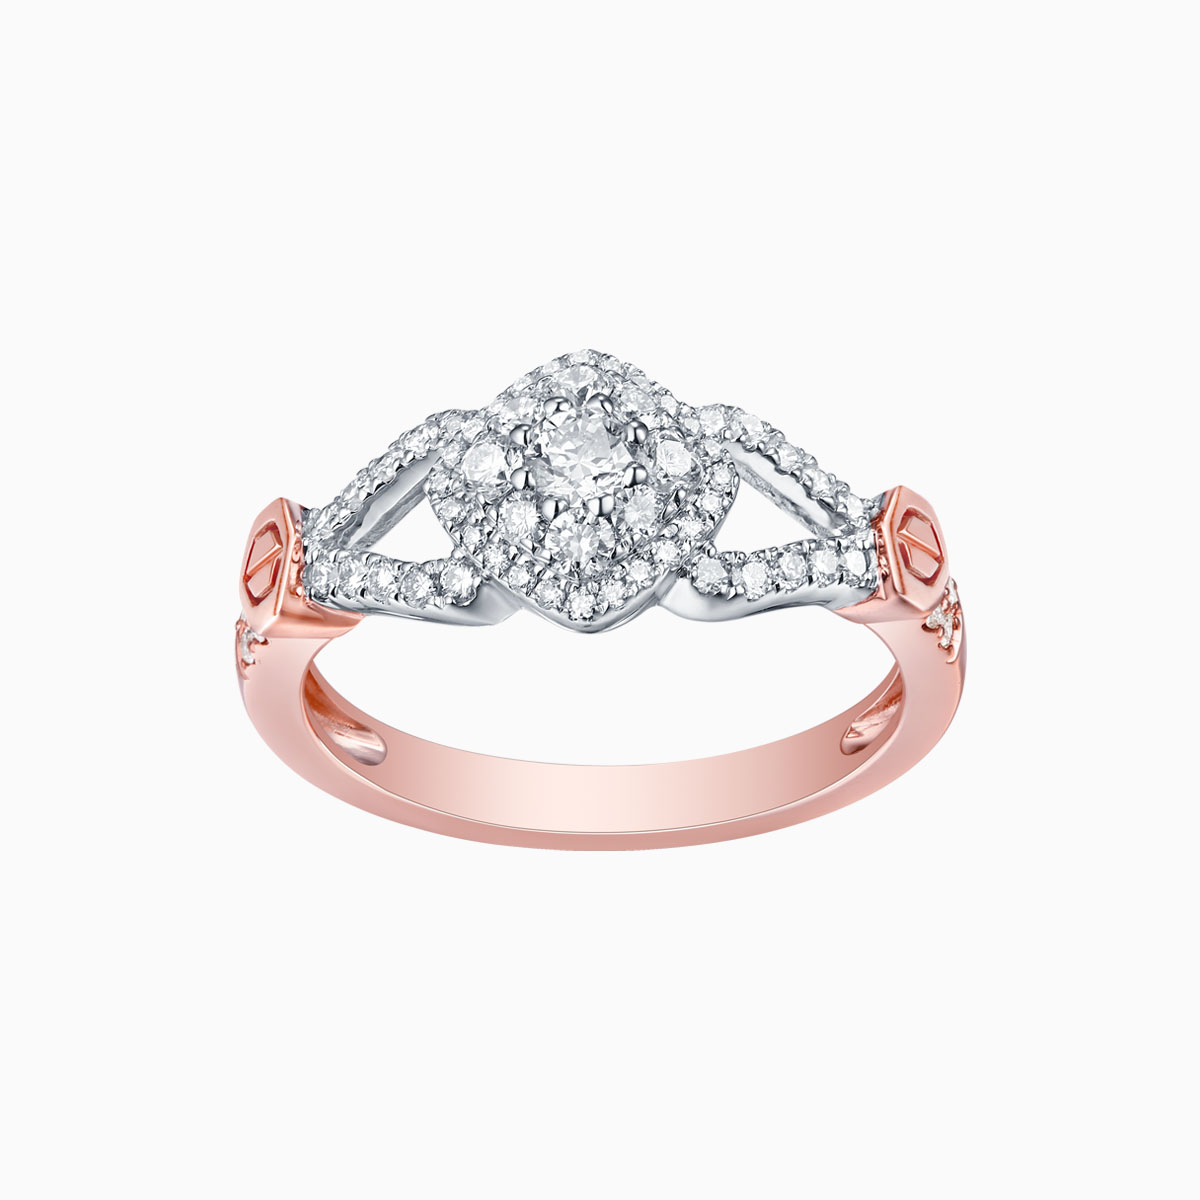 R17416WHT- 14K Rose Gold Diamond Ring, 0.60 TCW